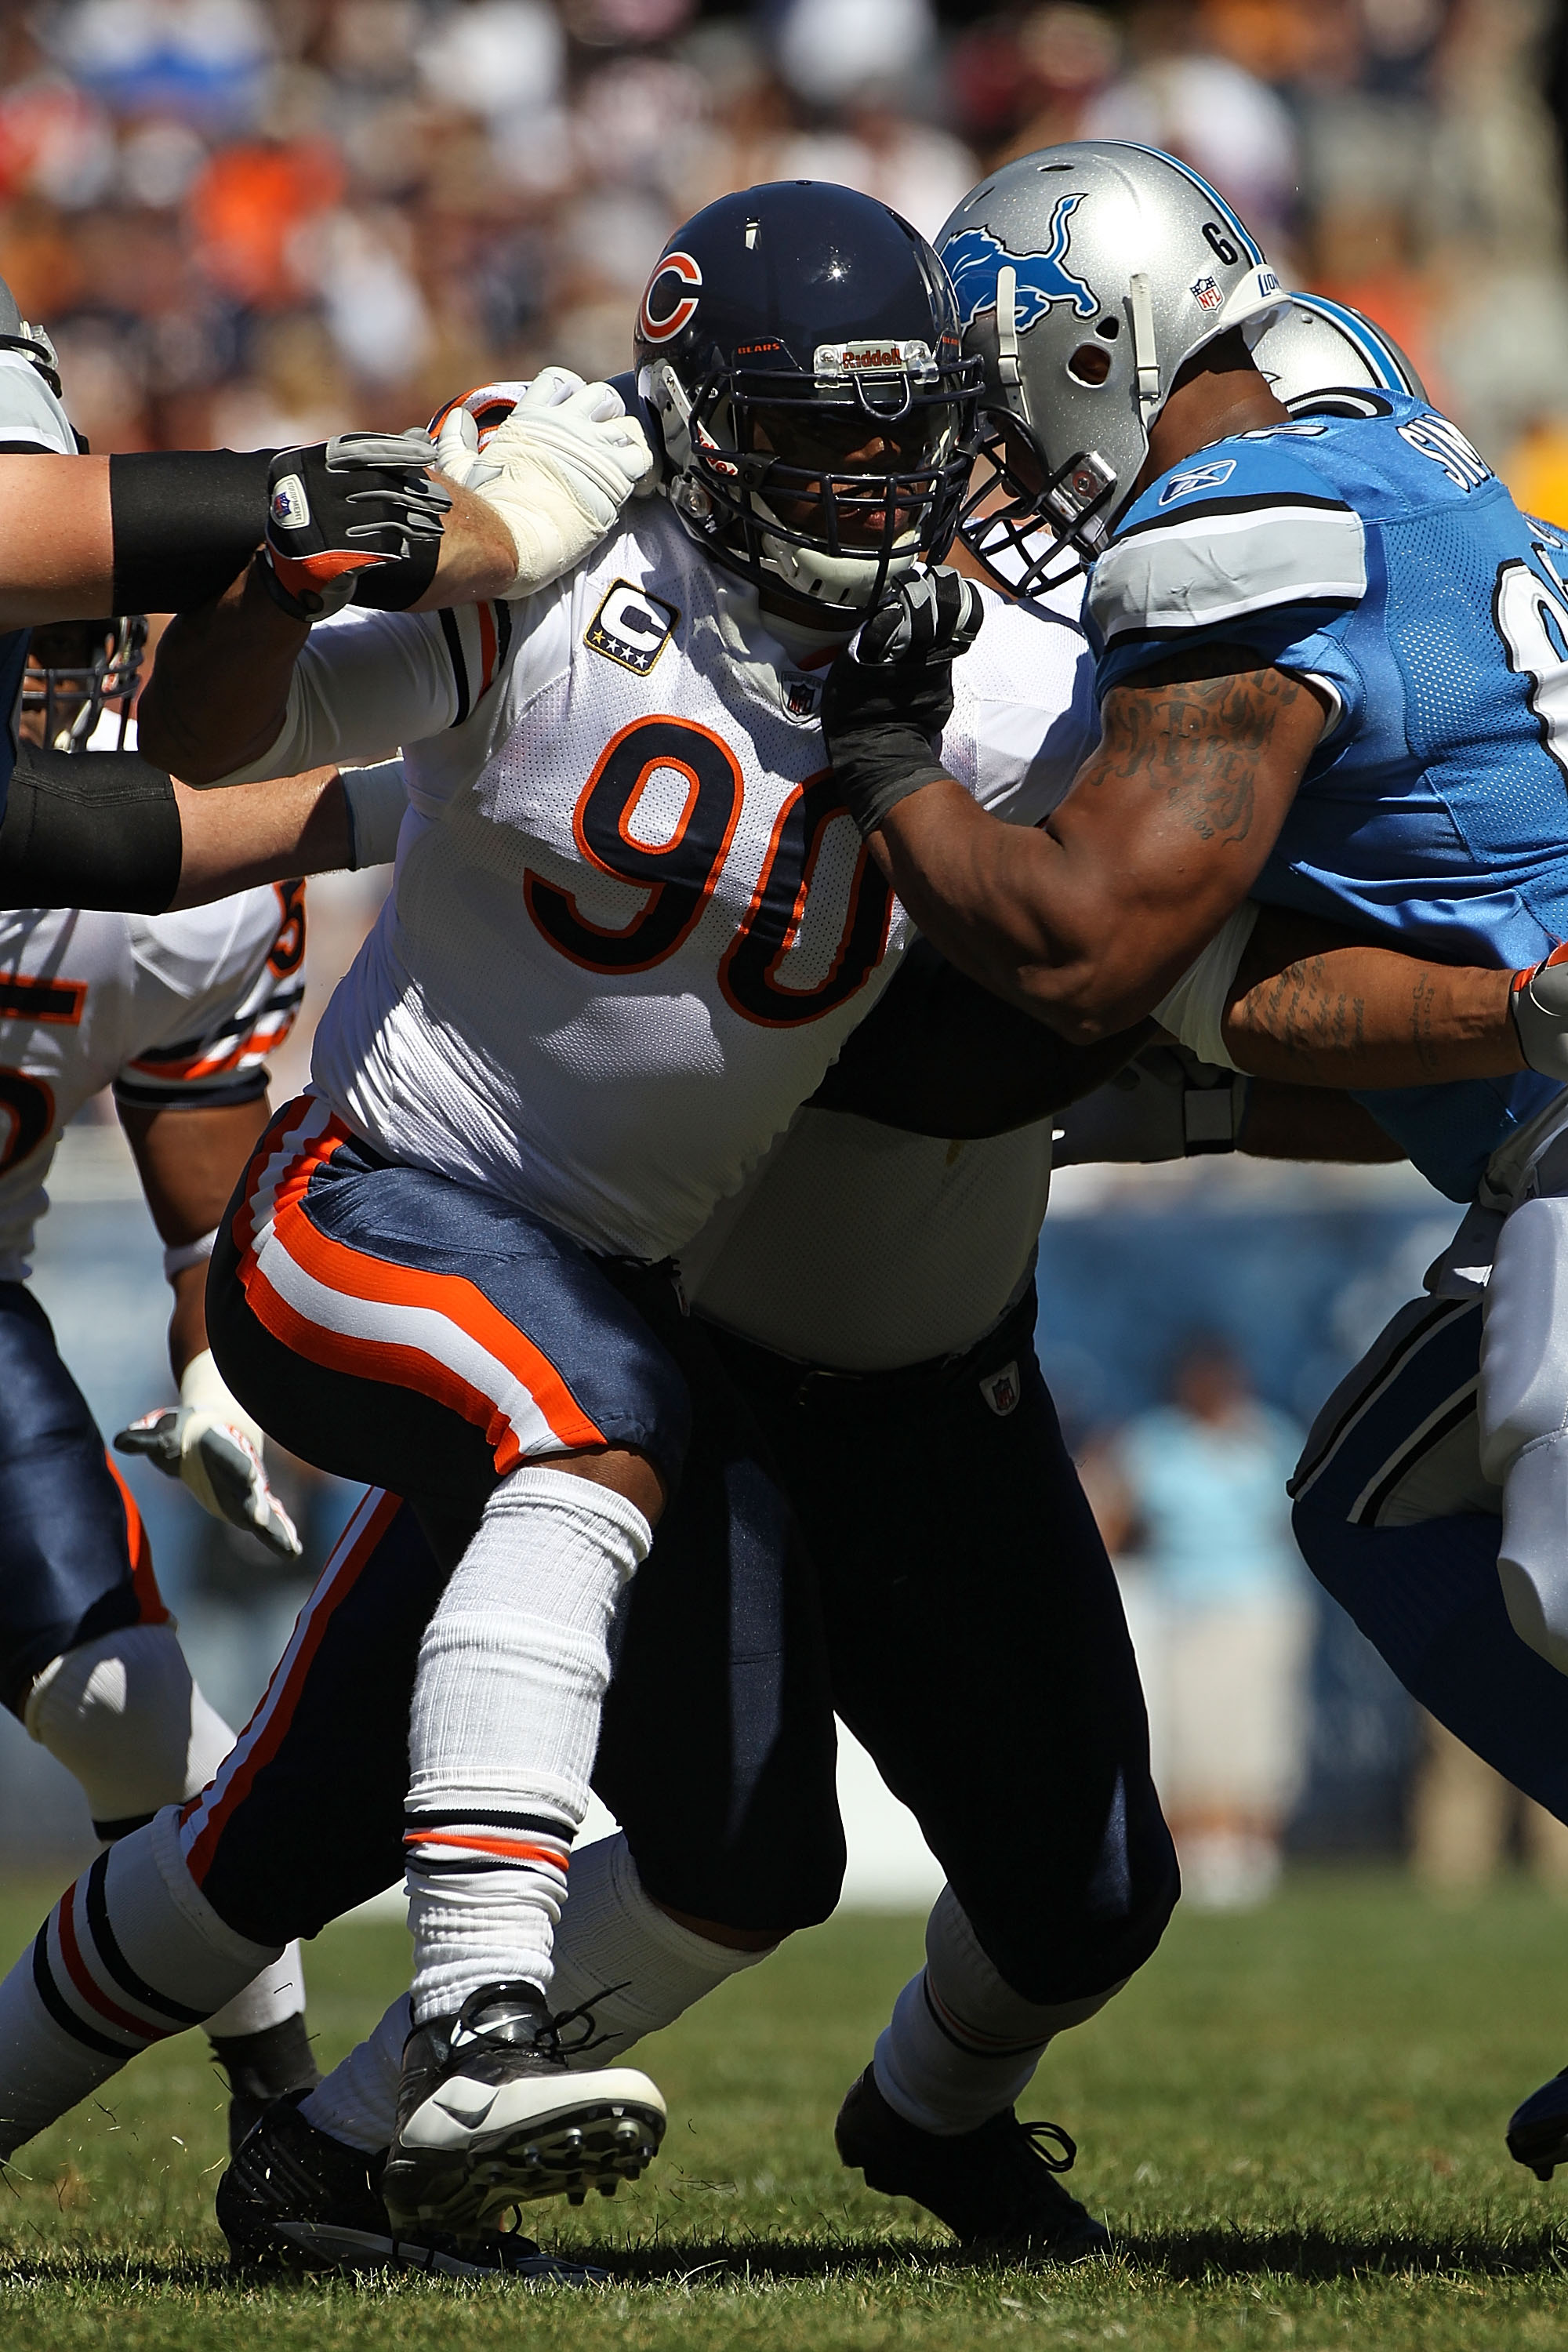 CHICAGO - SEPTEMBER 12: Julius Peppers #90 of the Chicago Bears rushes against Rob Sims #67 of the Detroit Lions during the NFL season opening game at Soldier Field on September 12, 2010 in Chicago, Illinois. The Bears defeated the Lions 19-14. (Photo by